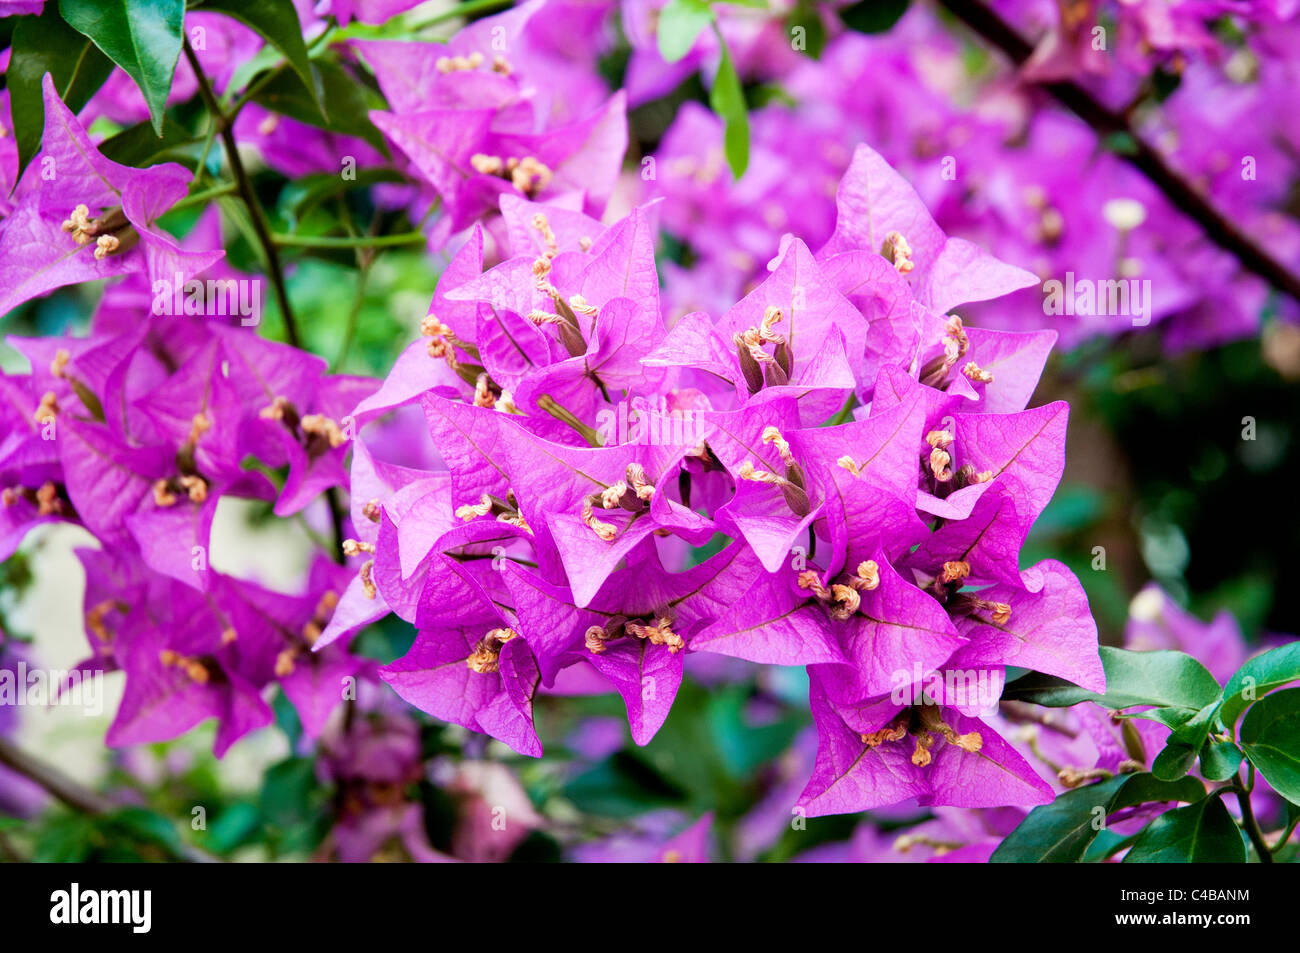 Close up shot of some Bougainvillea flowers - Stock Image